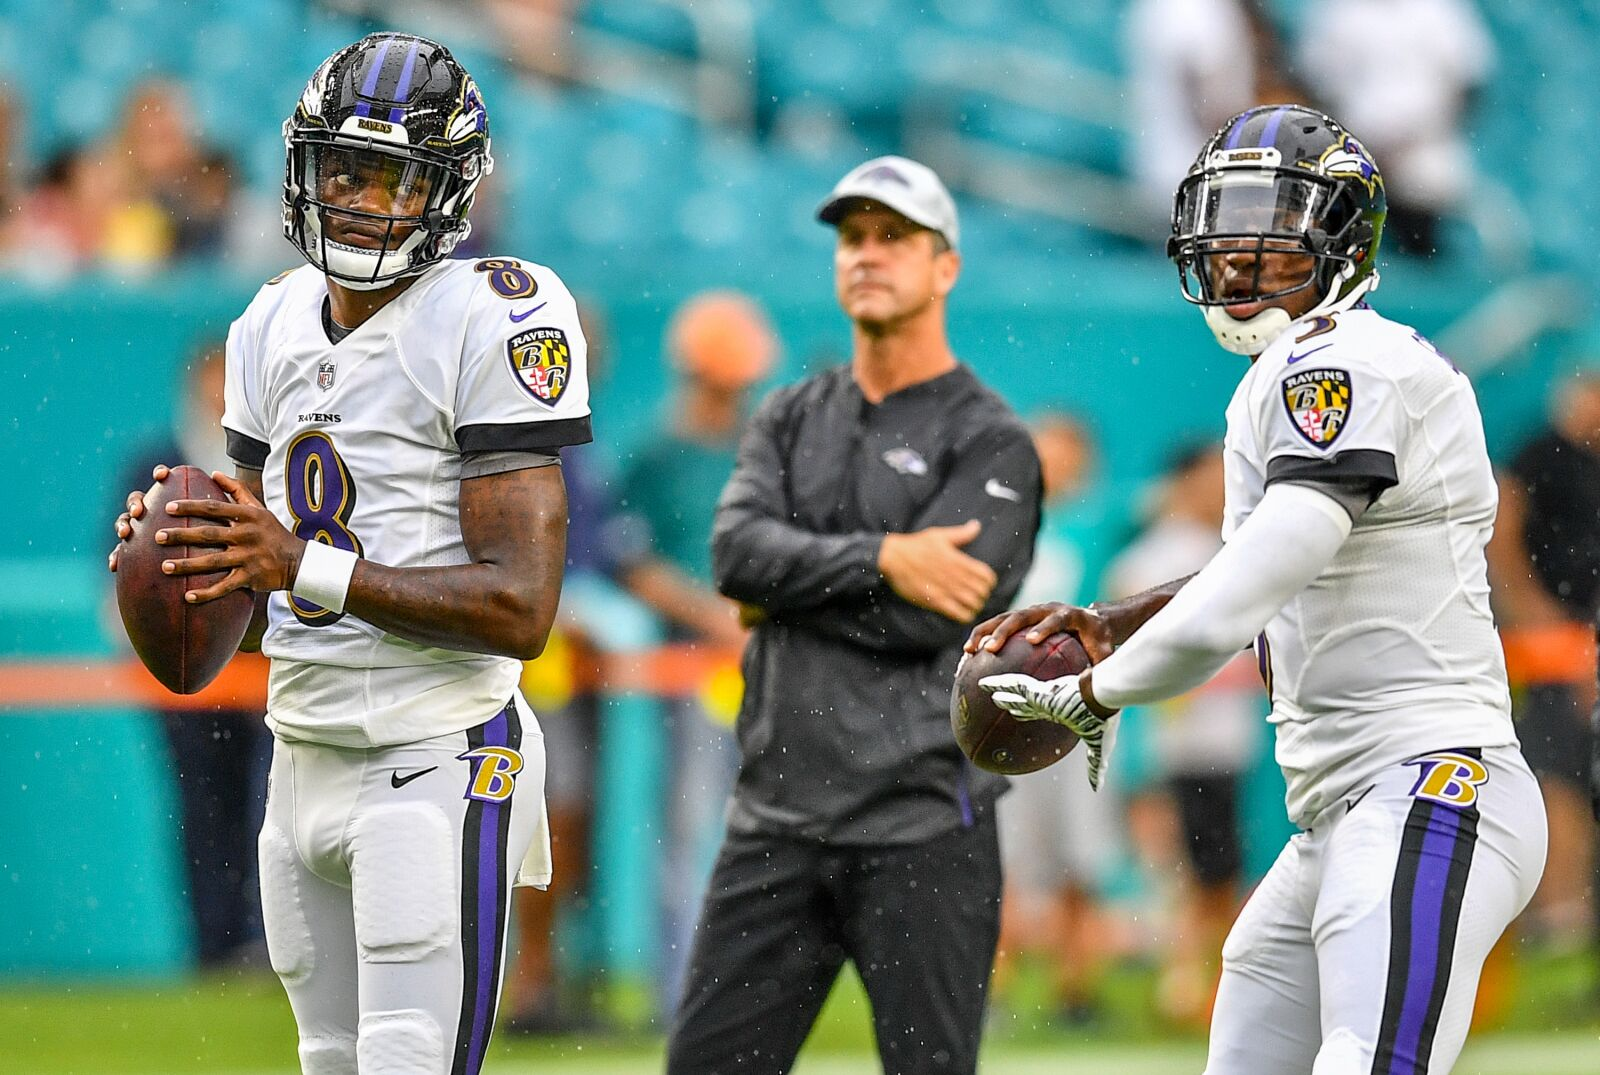 Baltimore Ravens tale of two QBs: Lamar Jackson and Robert Griffin III